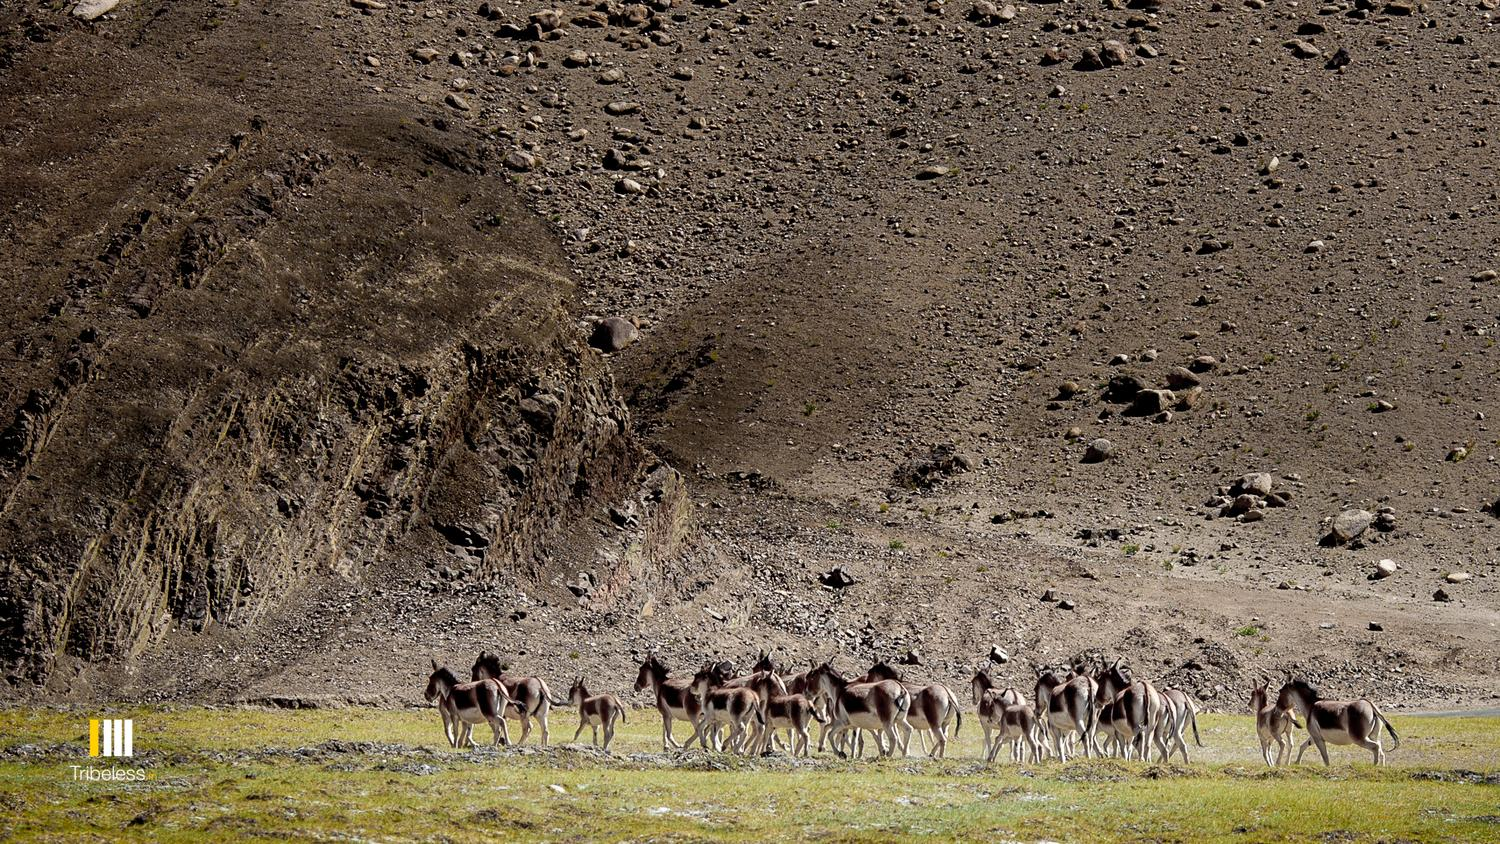 A large herd of Kiangs grazing by the Hanle river.